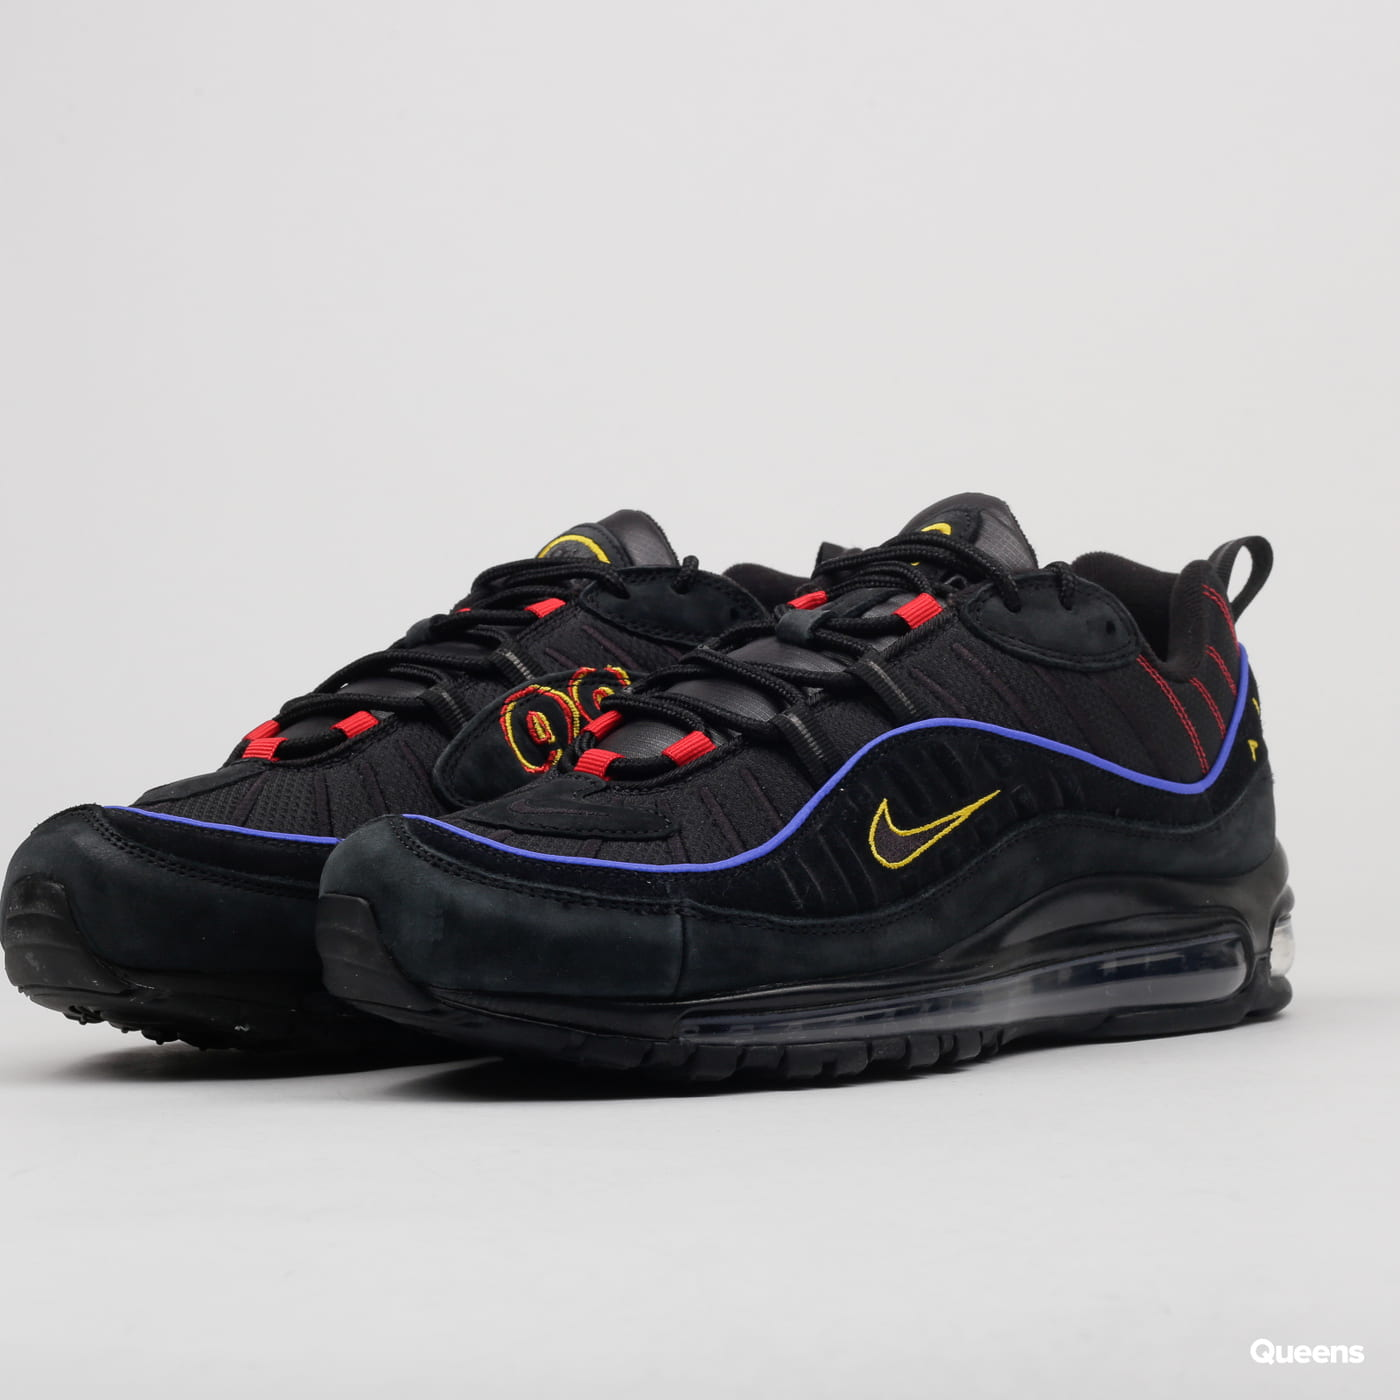 new arrival e5a13 c8e14 Nike Air Max 98 black / black - amarillo